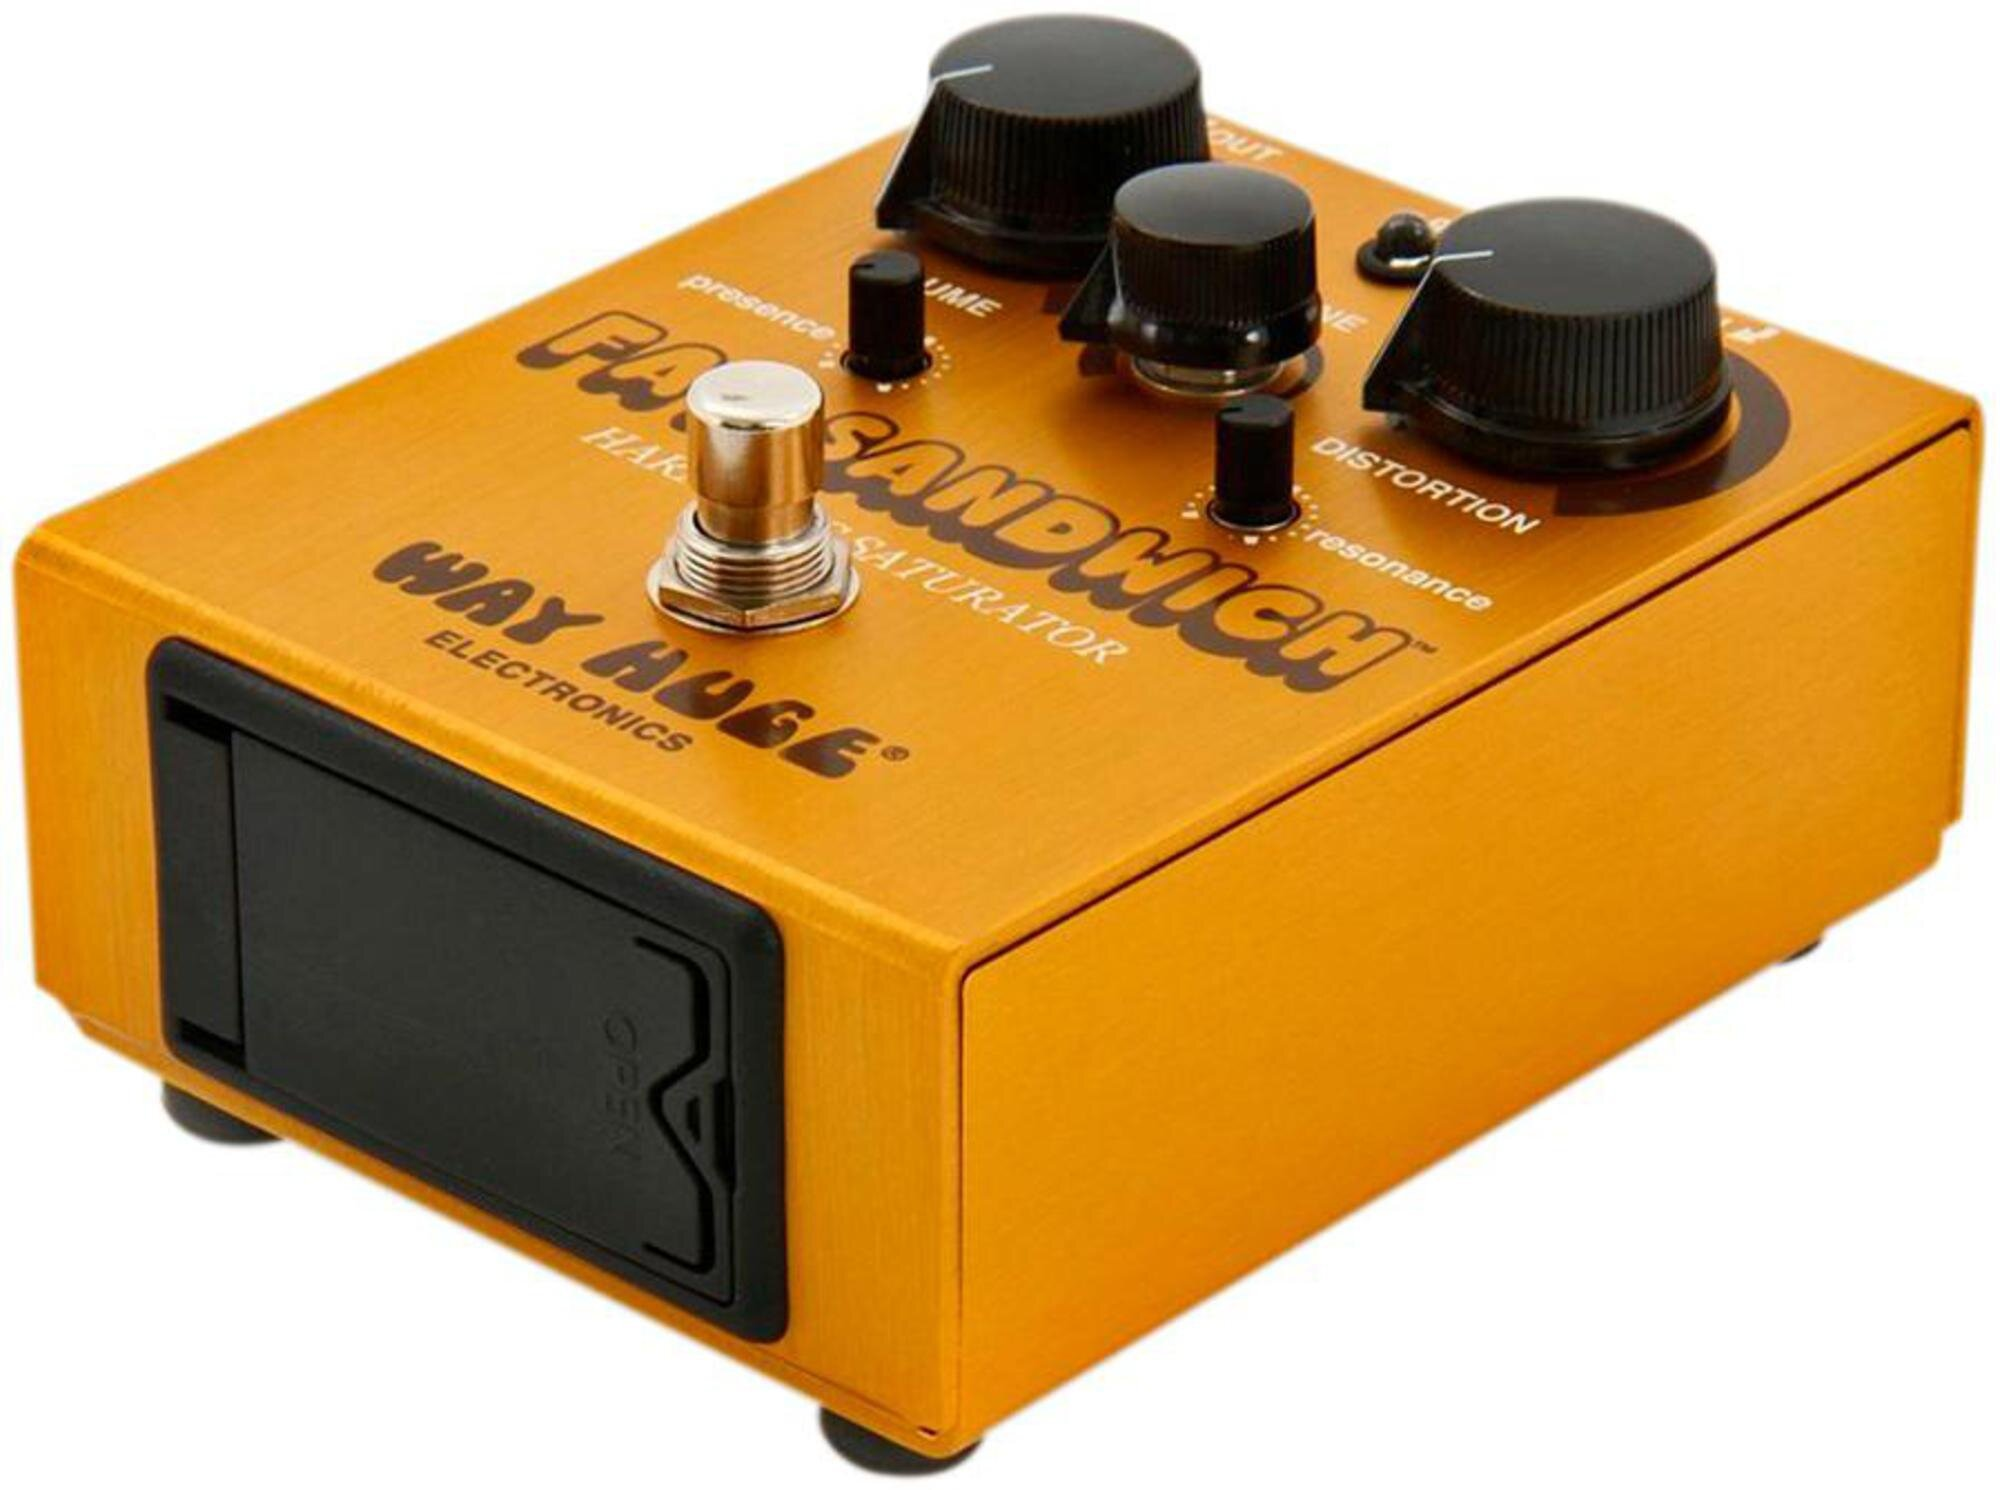 продажа Way Huge Electronics WHE301 FAT SANDWICH HARMONIC SATURATOR DISTORTION педаль дисторшн